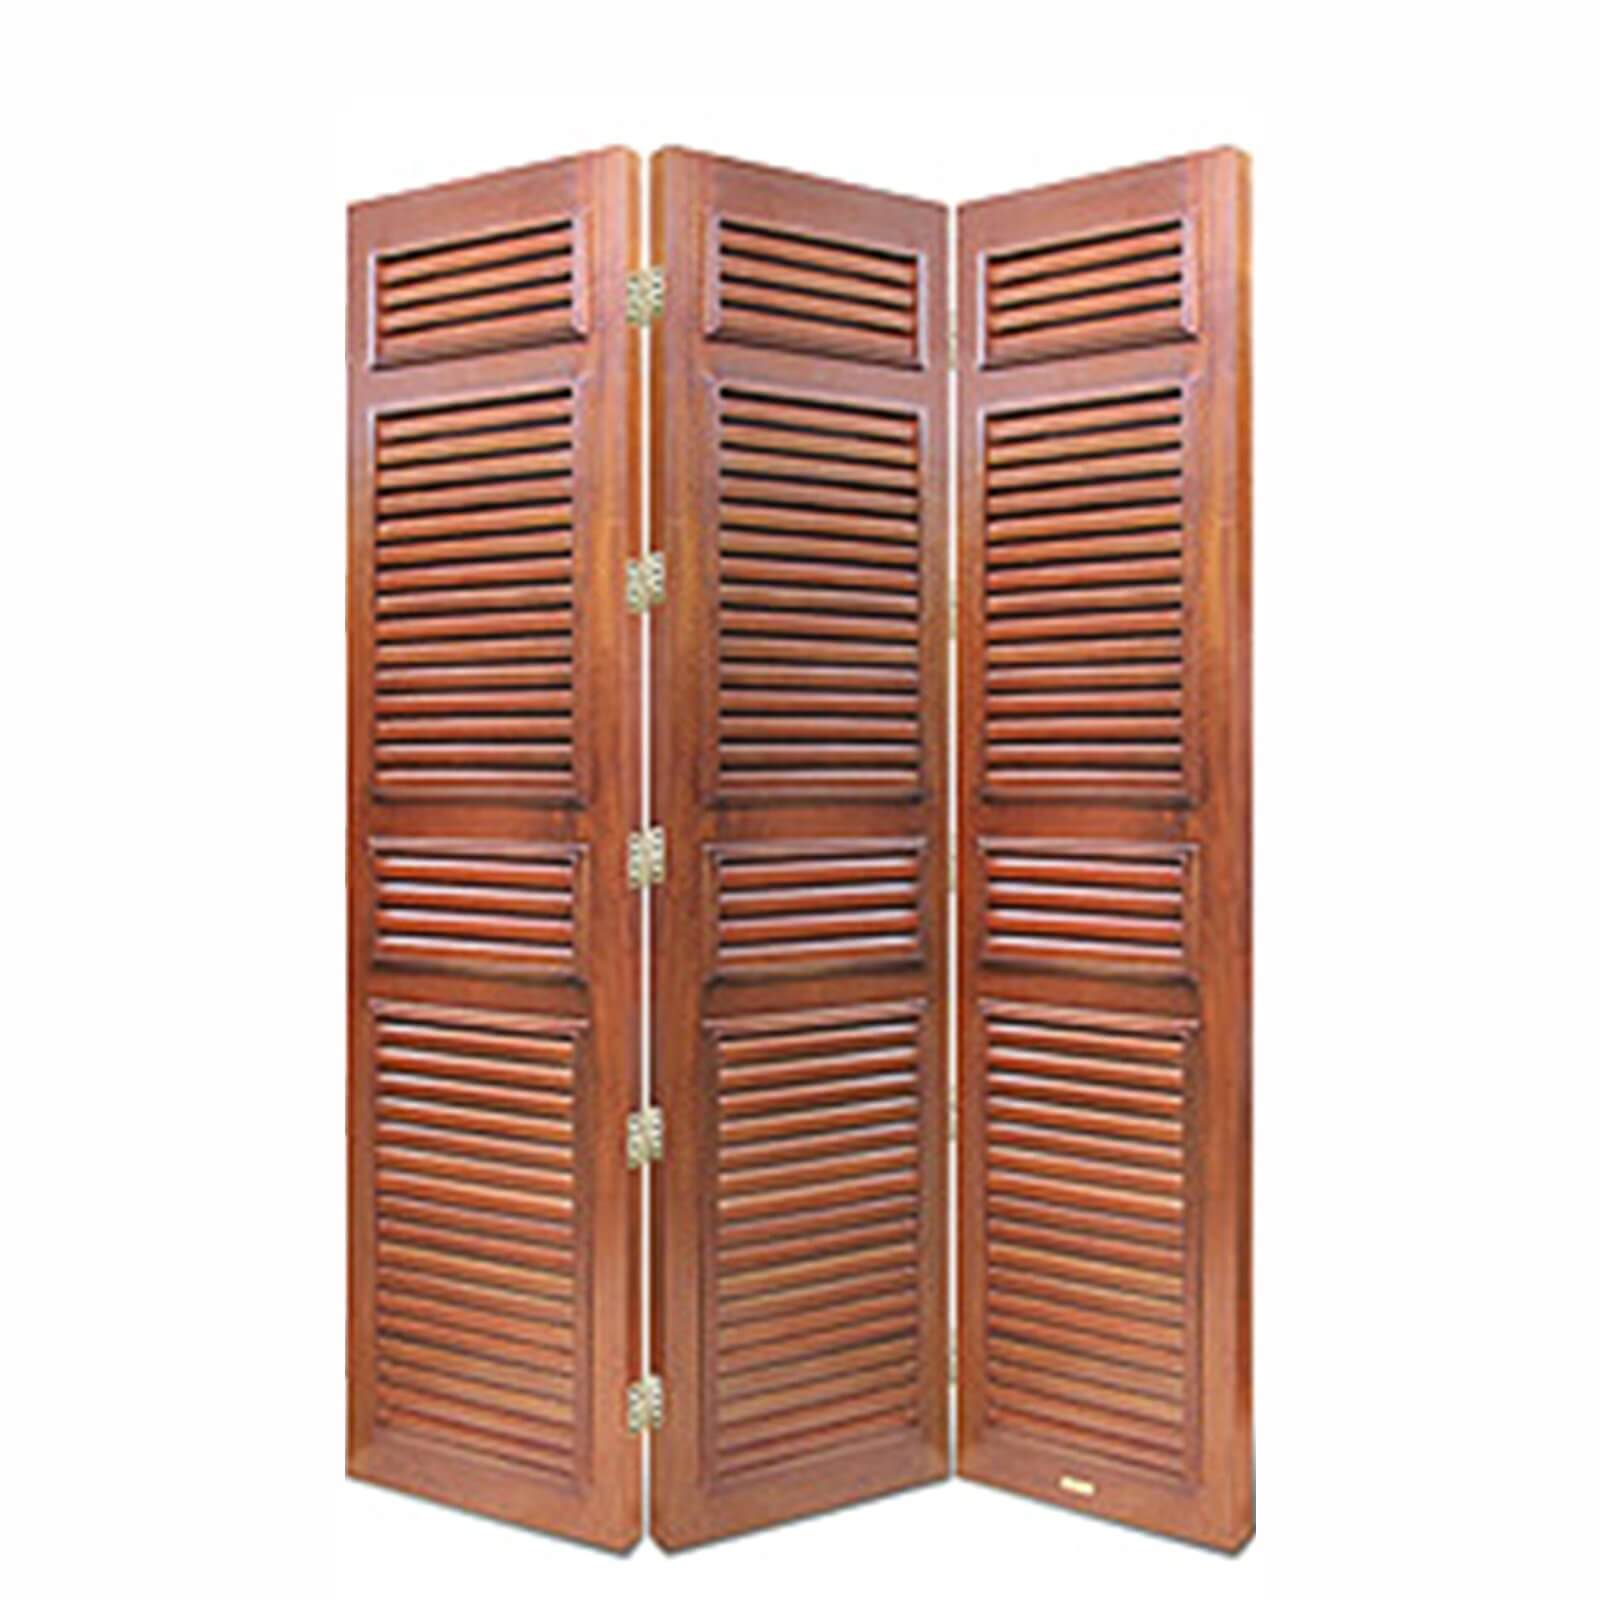 PLANTATION FOLDING SCREEN - STUART MEMBERY HOME COLLECTION